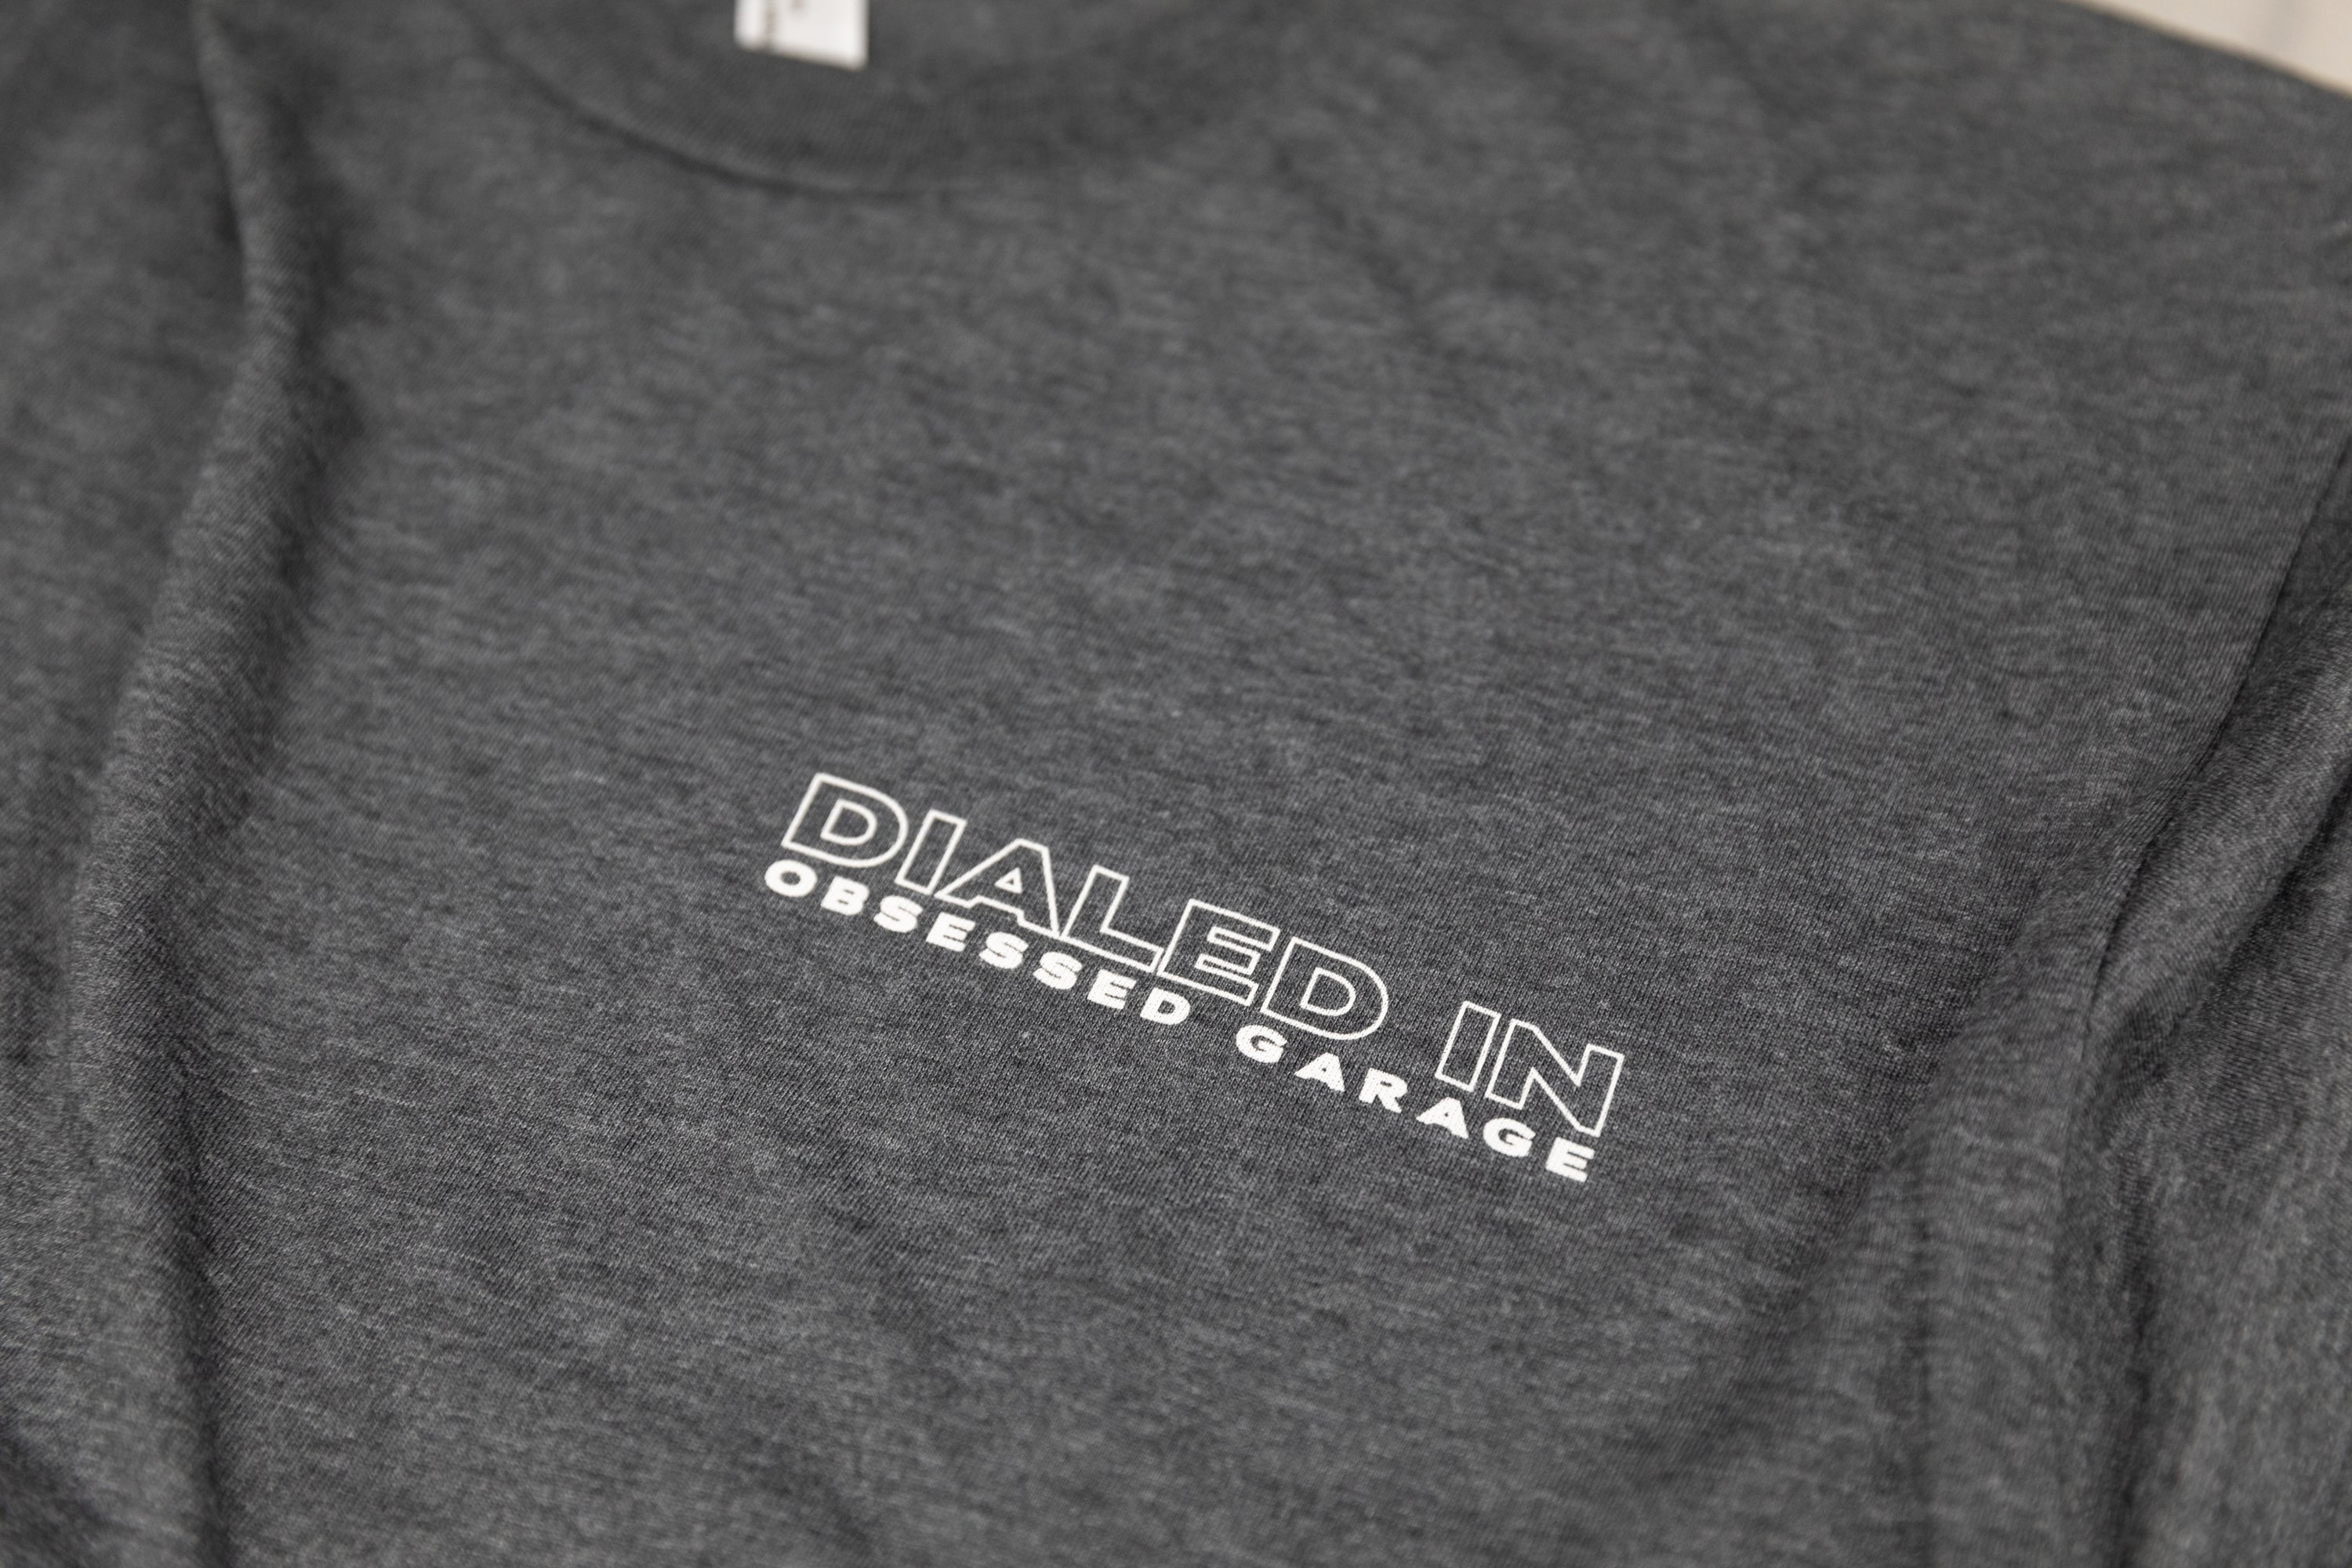 Dialed In Wheels Shirt